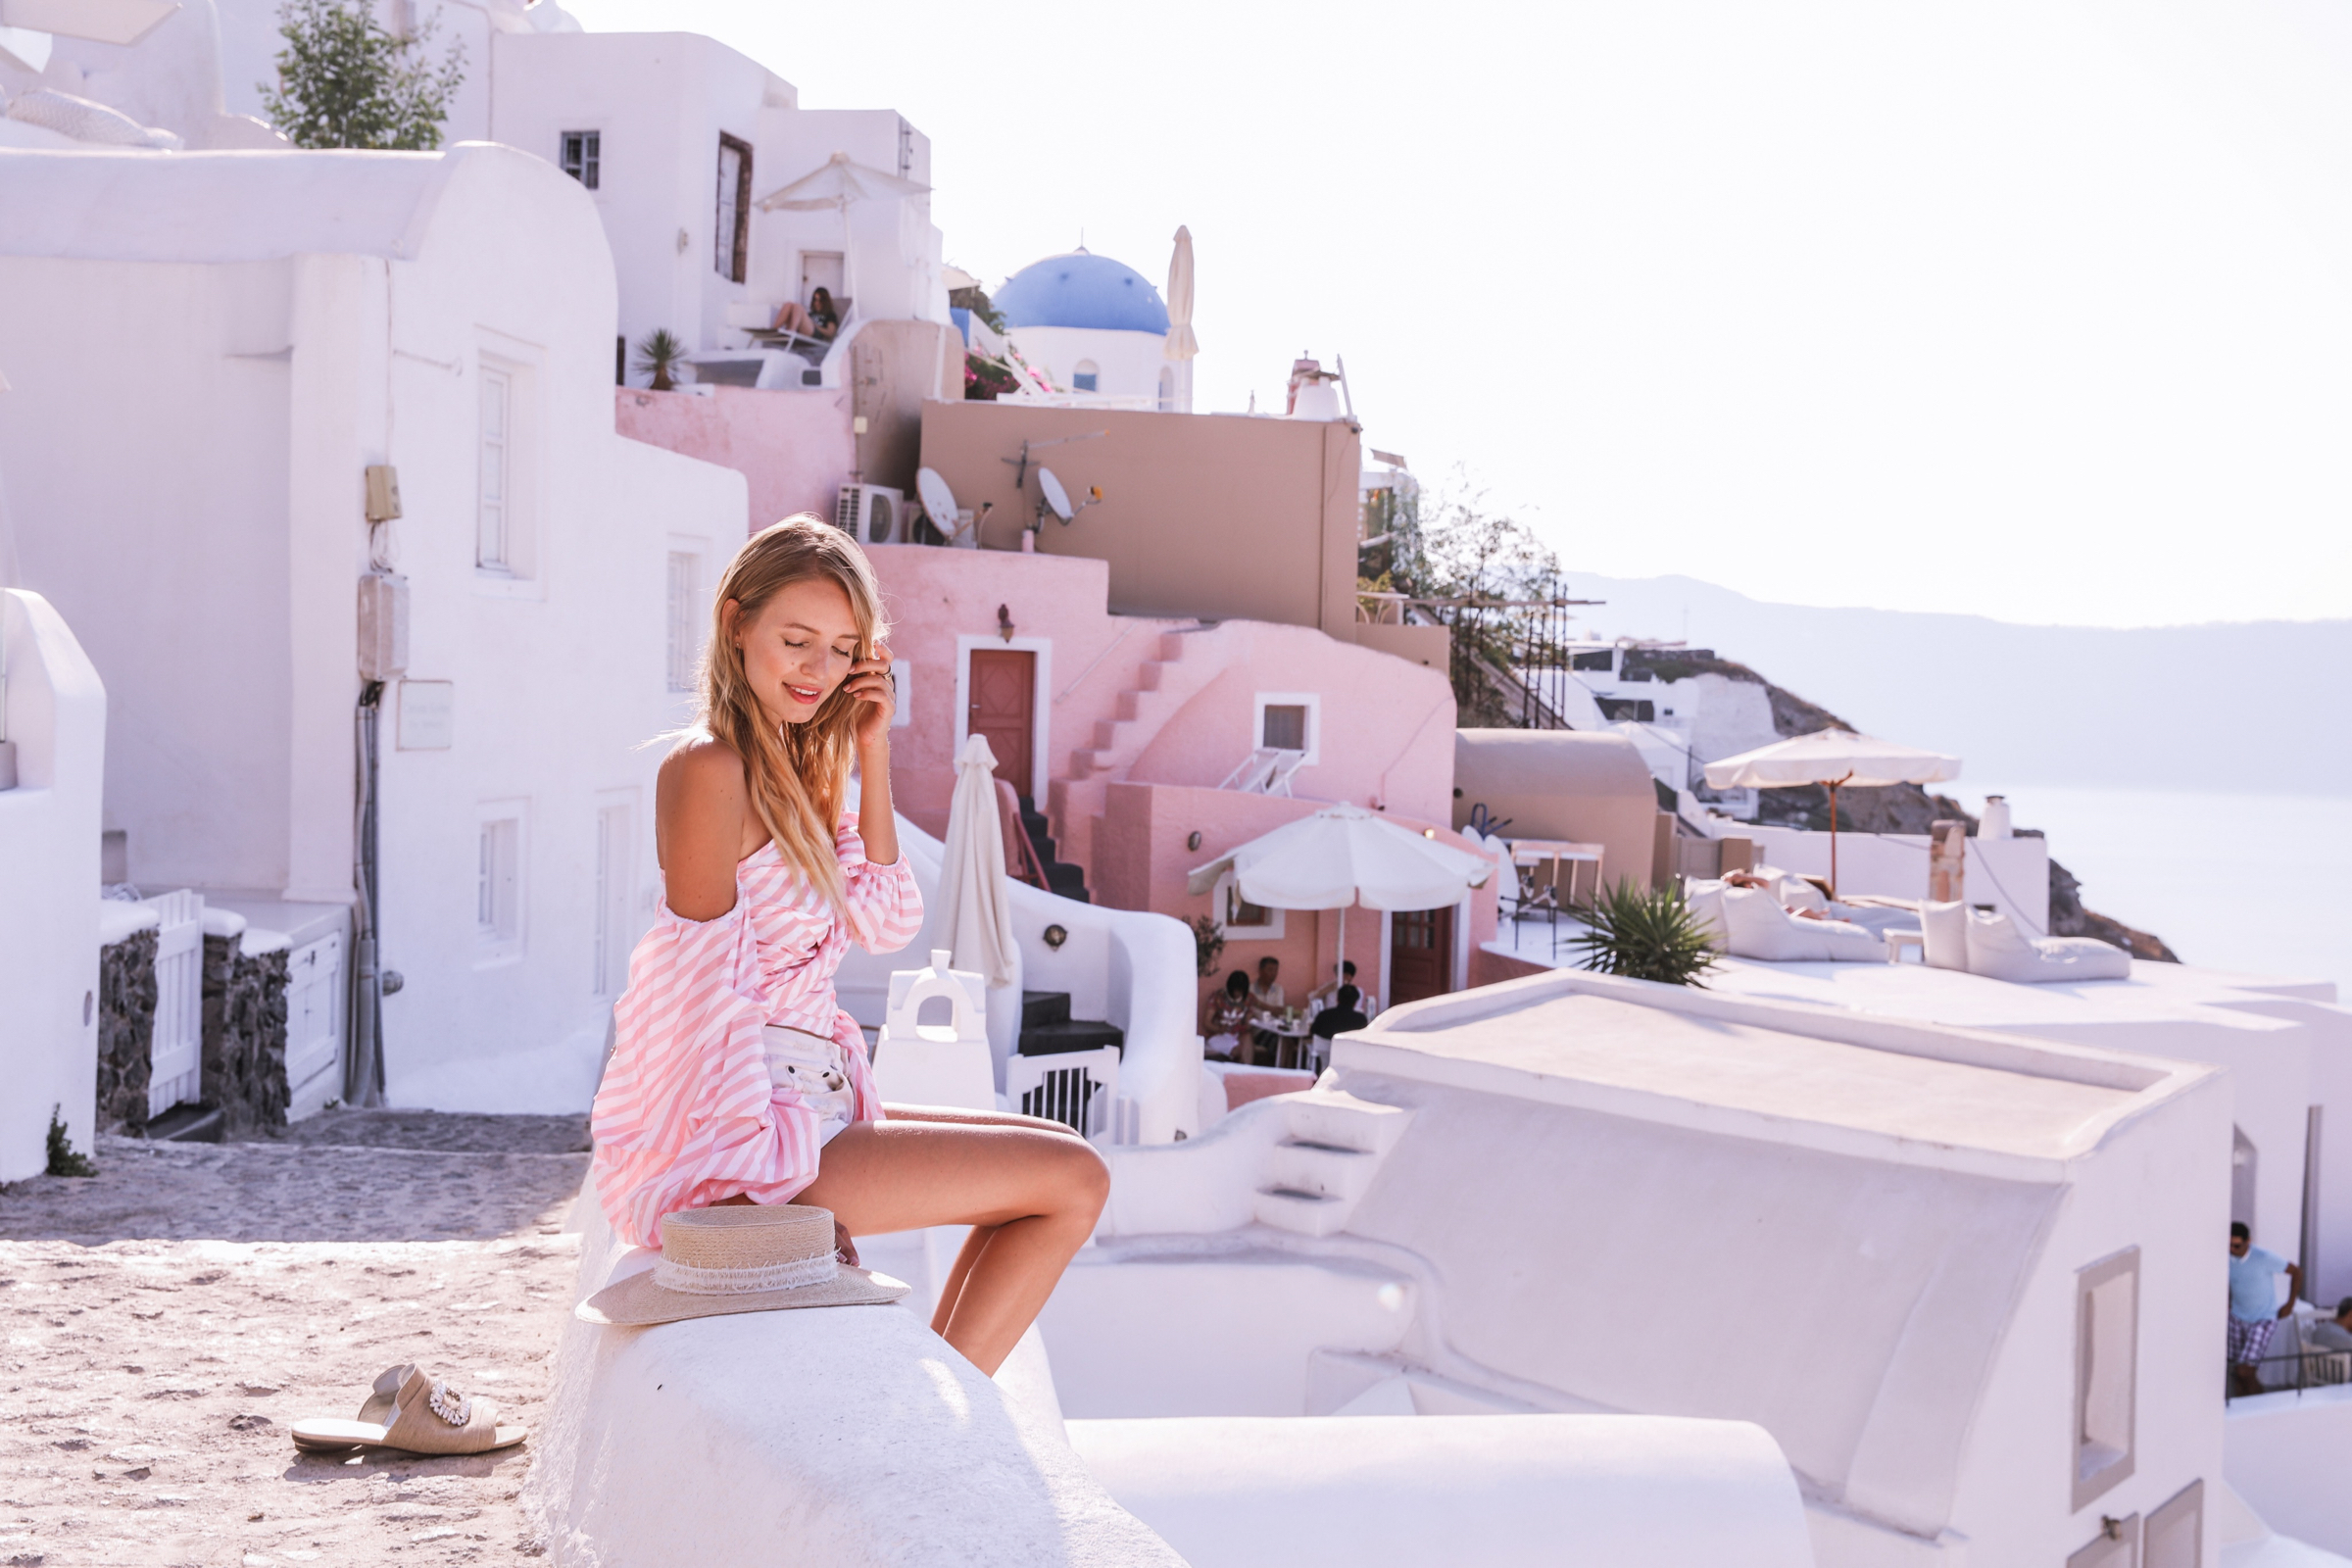 Wrapped blouse & Pink hues | Santorini